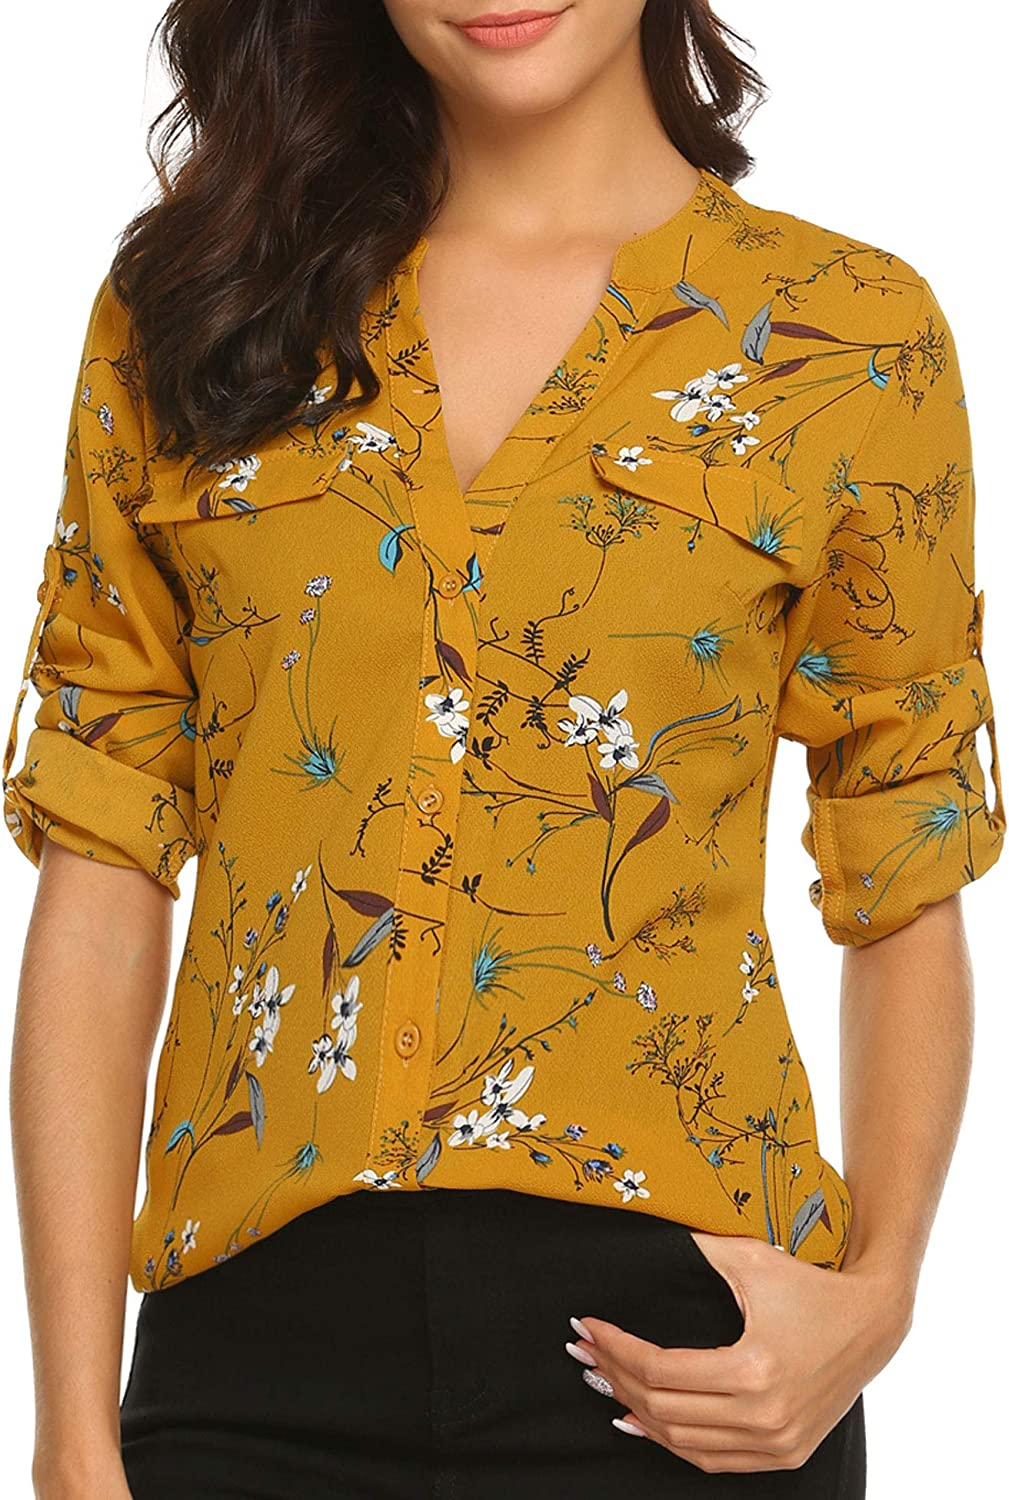 SoTeer Women Long Sleeve Tunic Tops Button Down Chiffon Shirts Floral Printed/Solid Henley V Neck Blouses